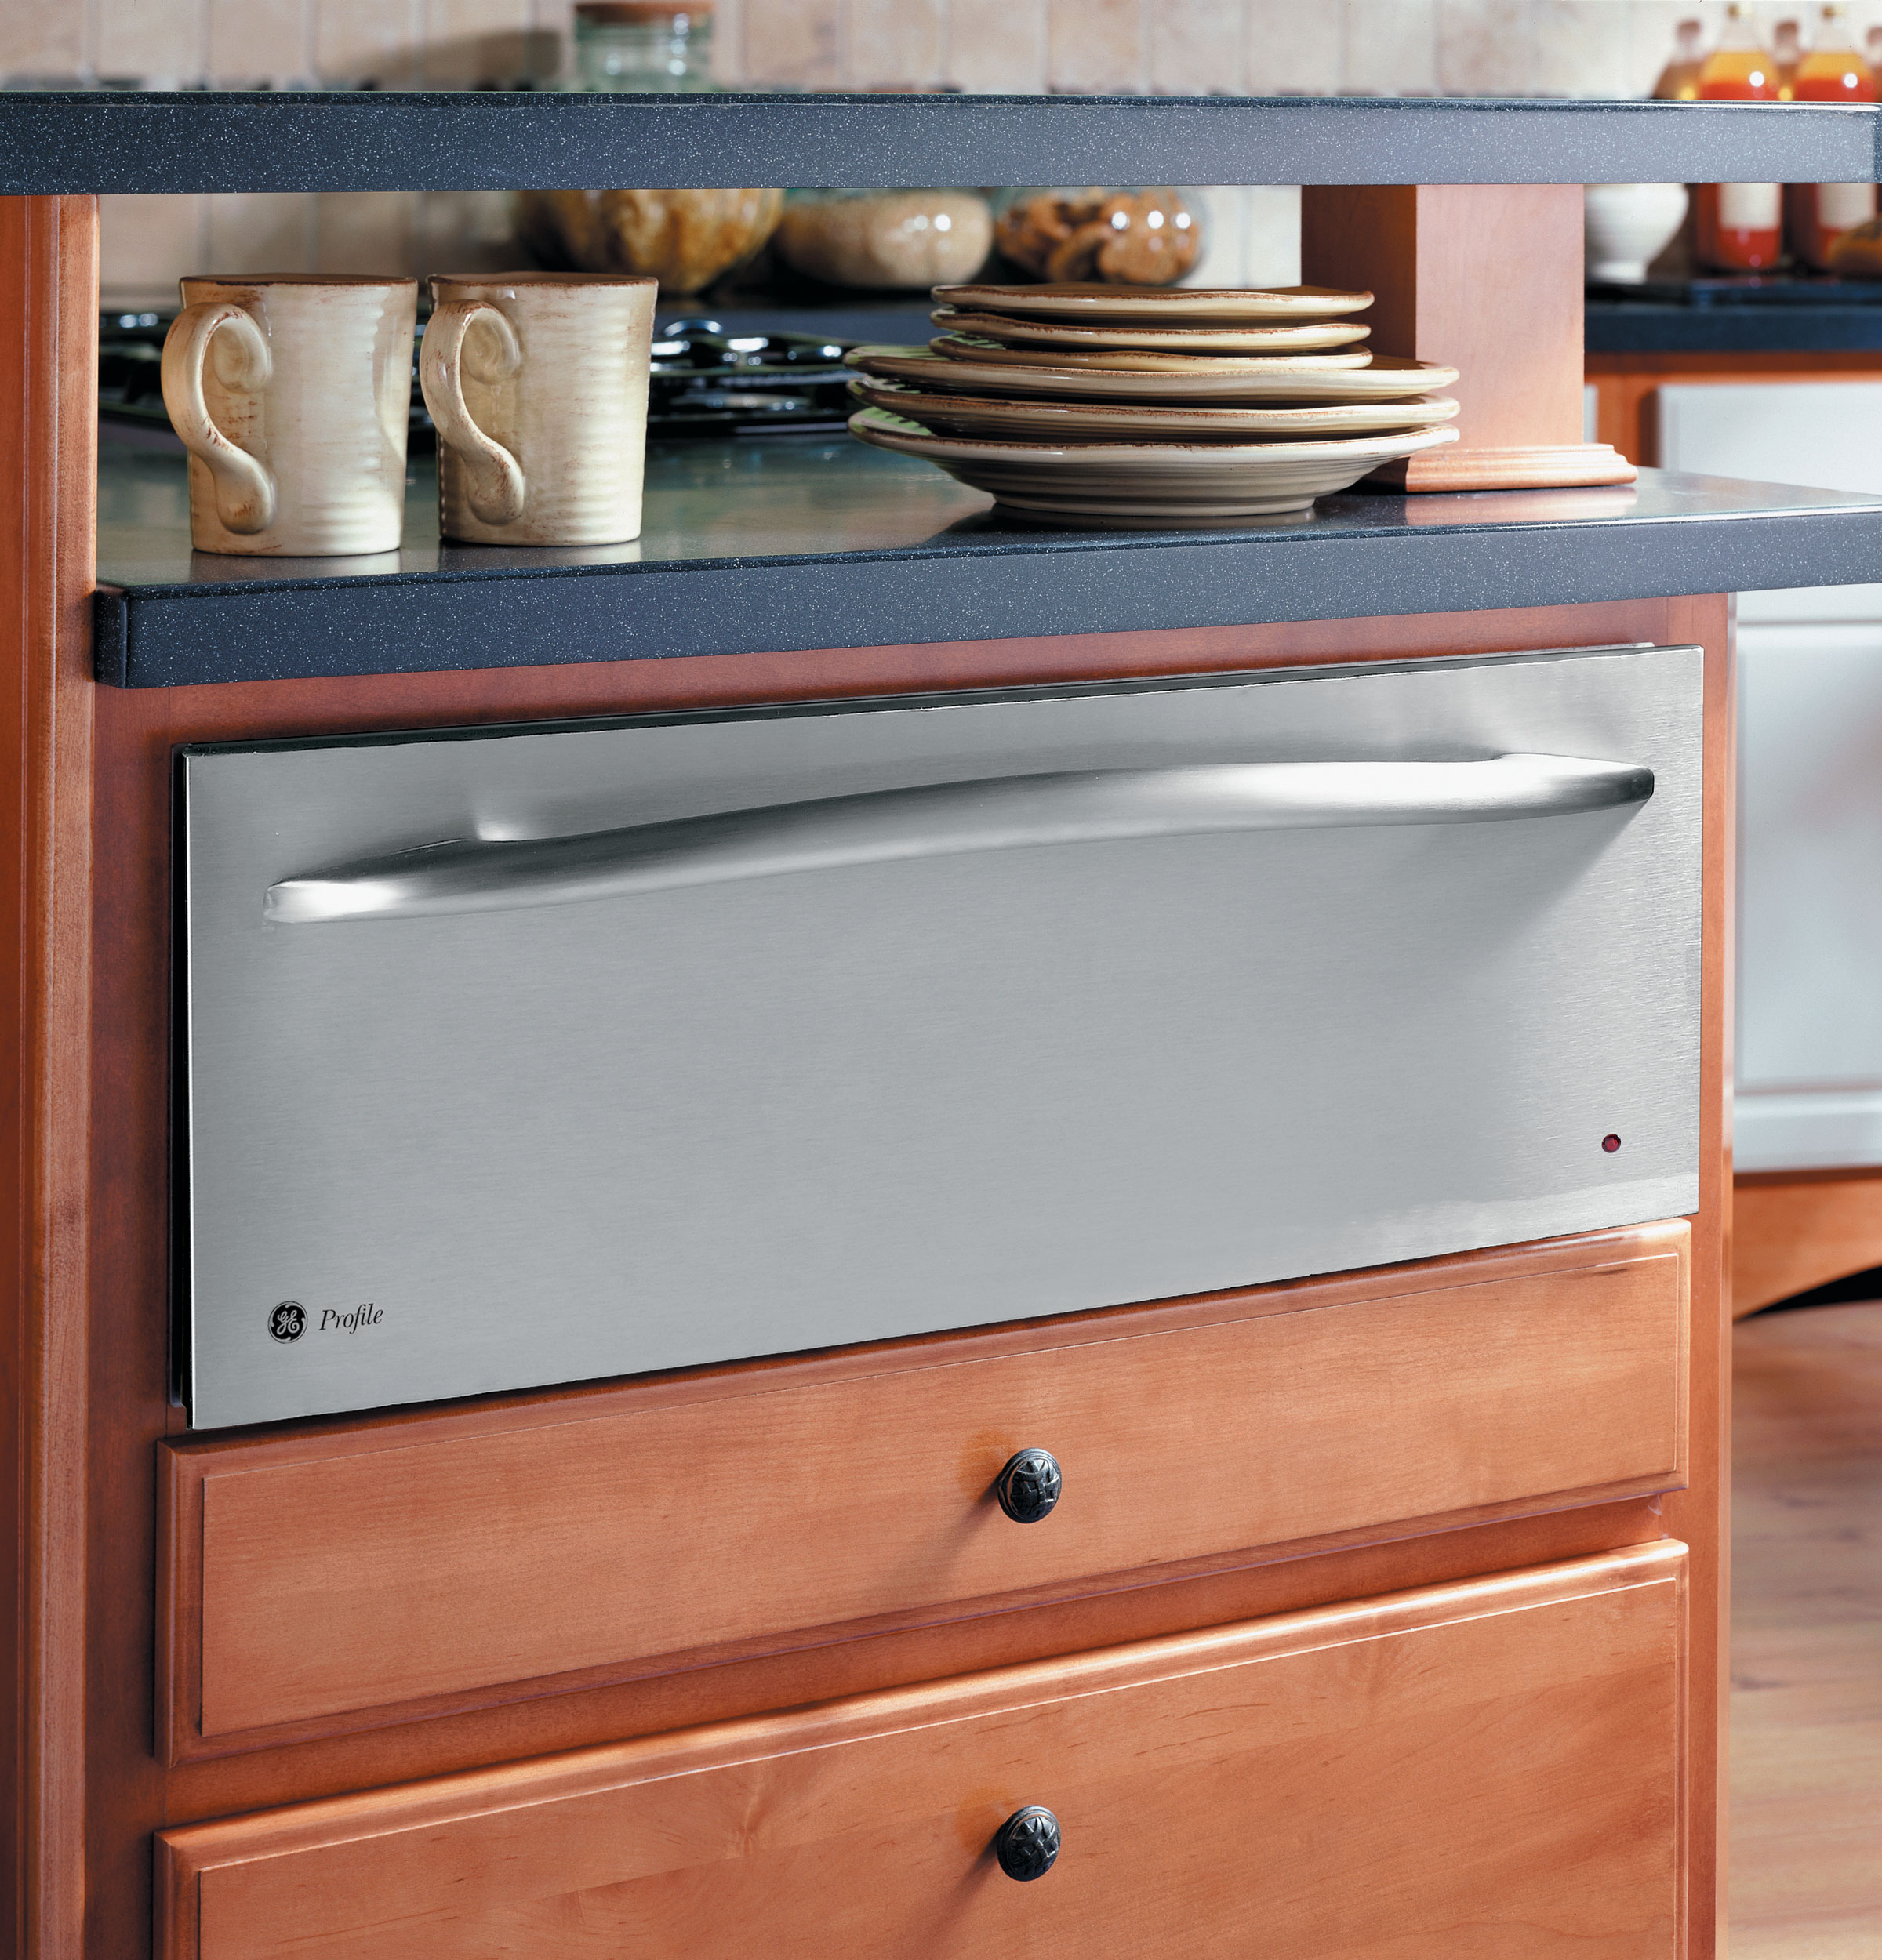 of caple drawer source appliance warming picture